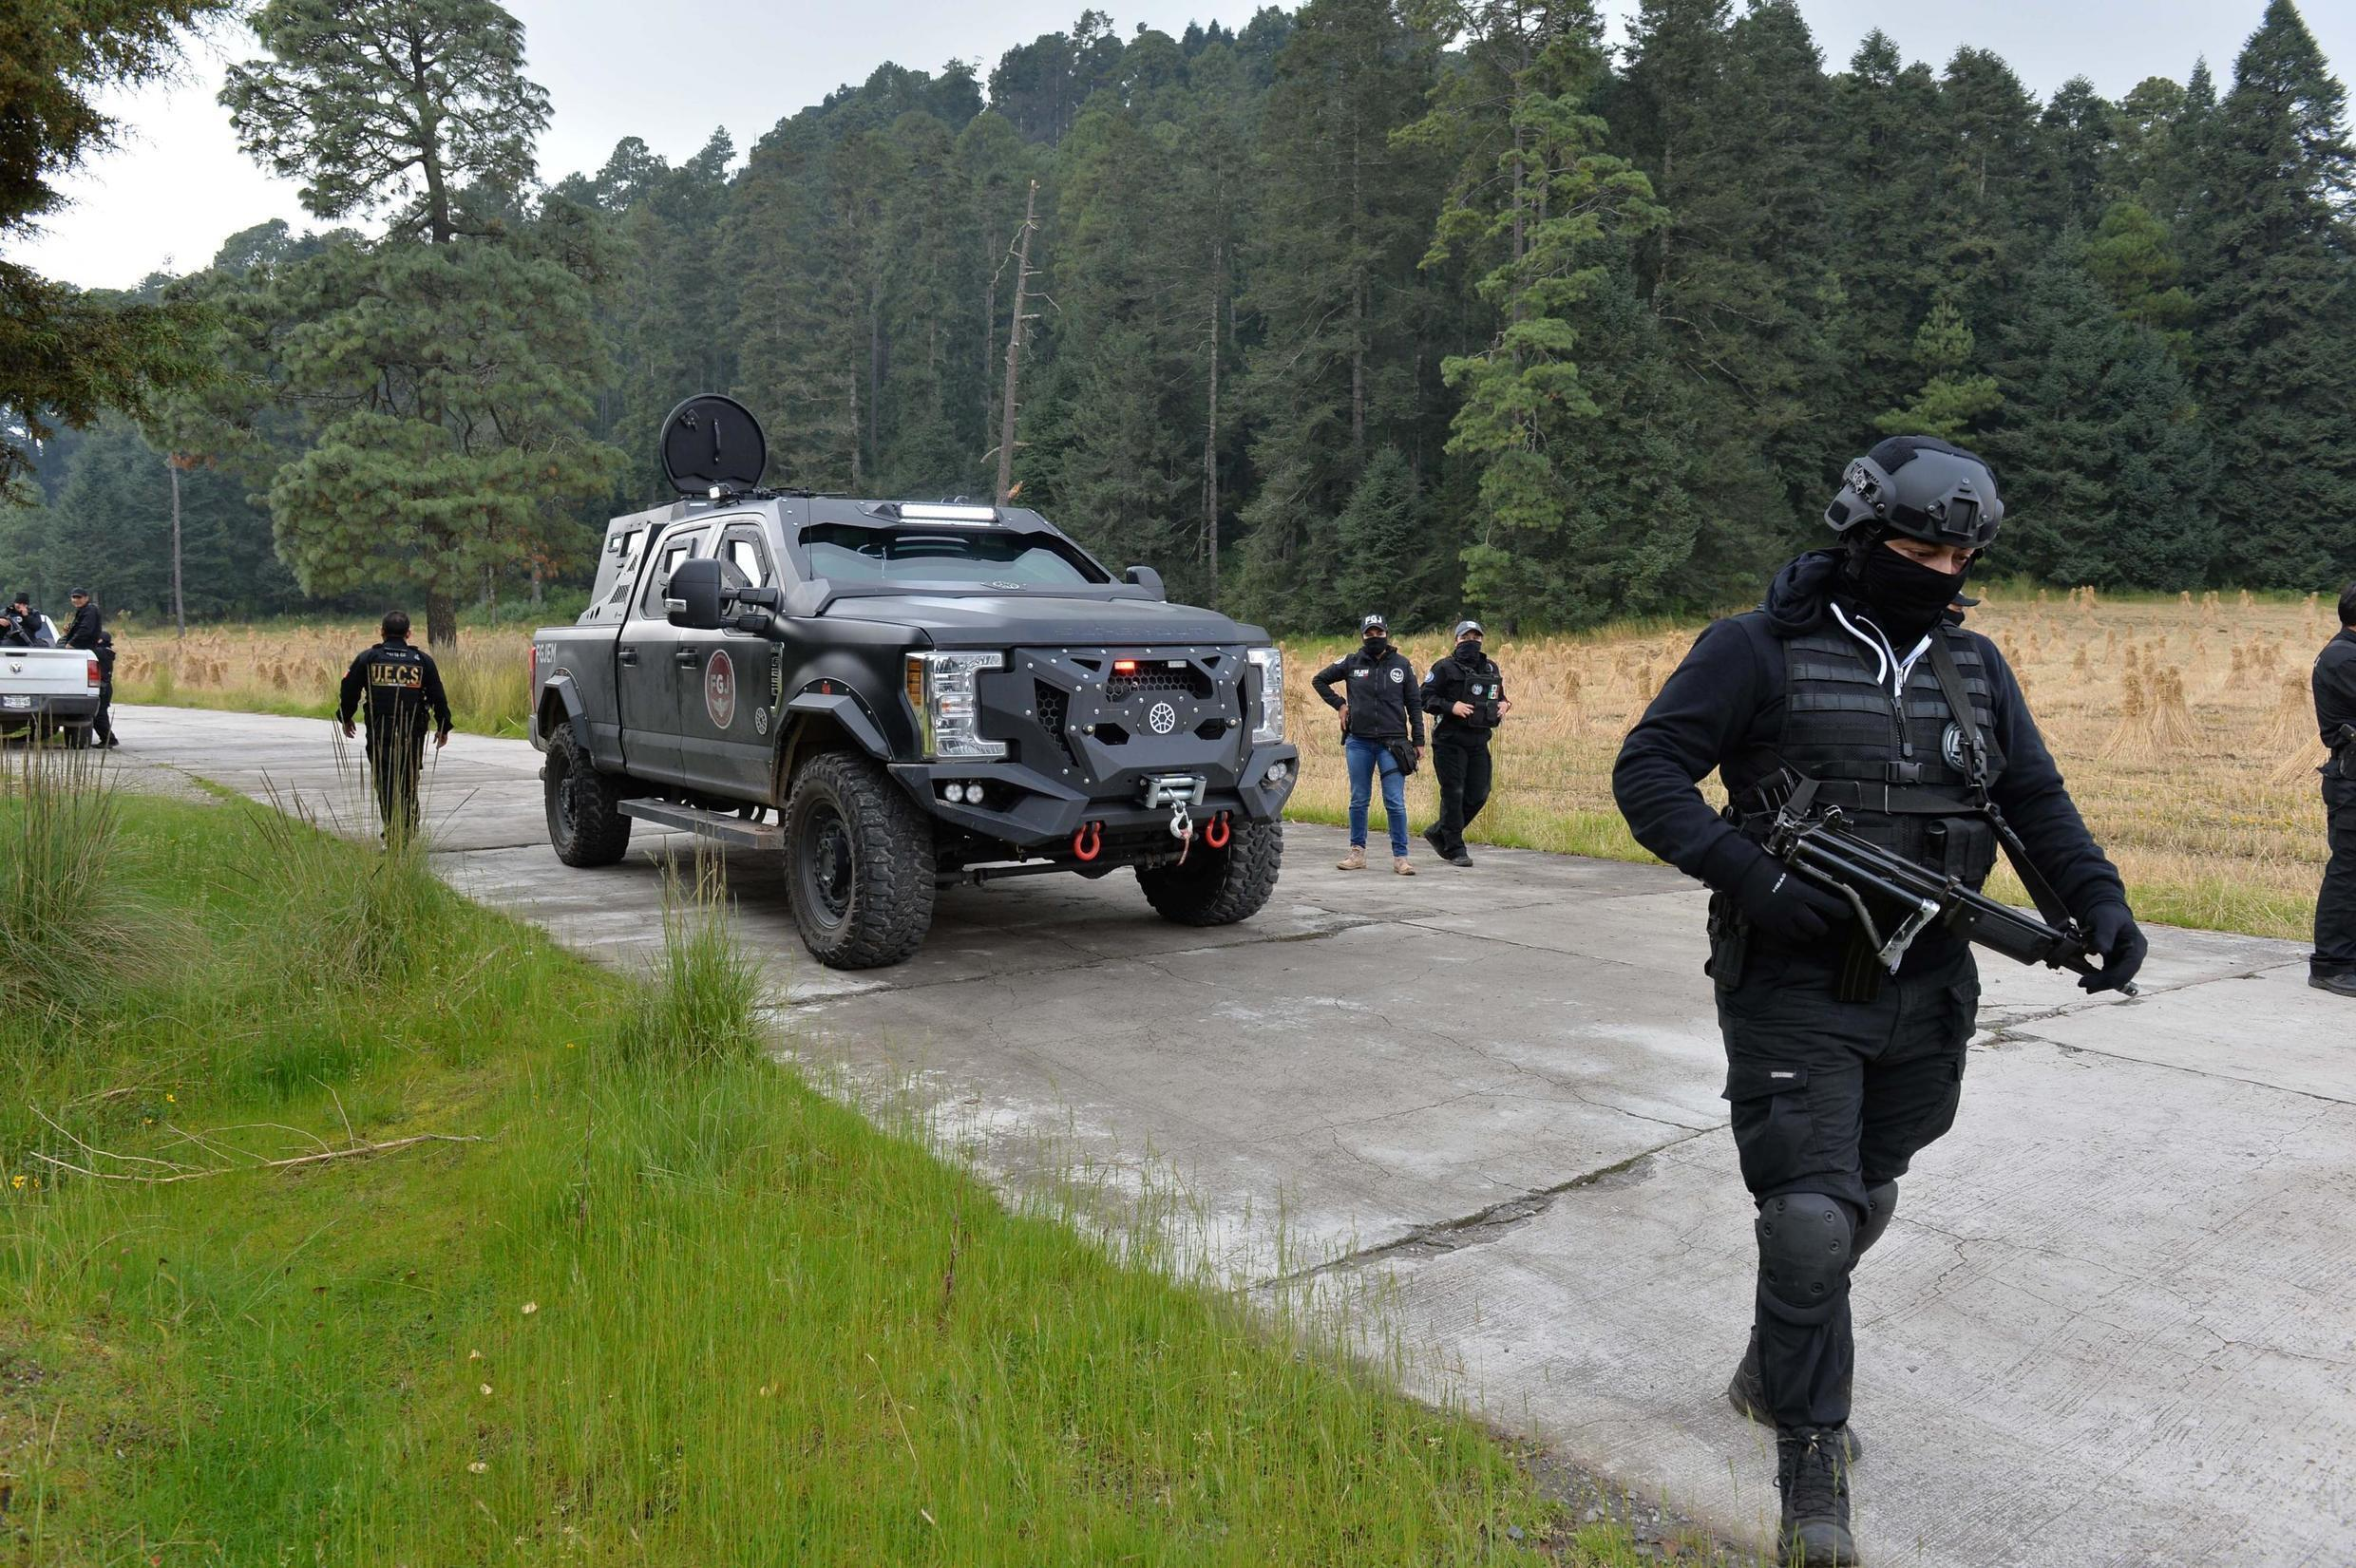 Police and soldiers search for the missing Frenchman and his Mexican travelling companion, who were kidnapped (and later released) at the Nevado de Toluca volcano in Mexico, 24 November 2019